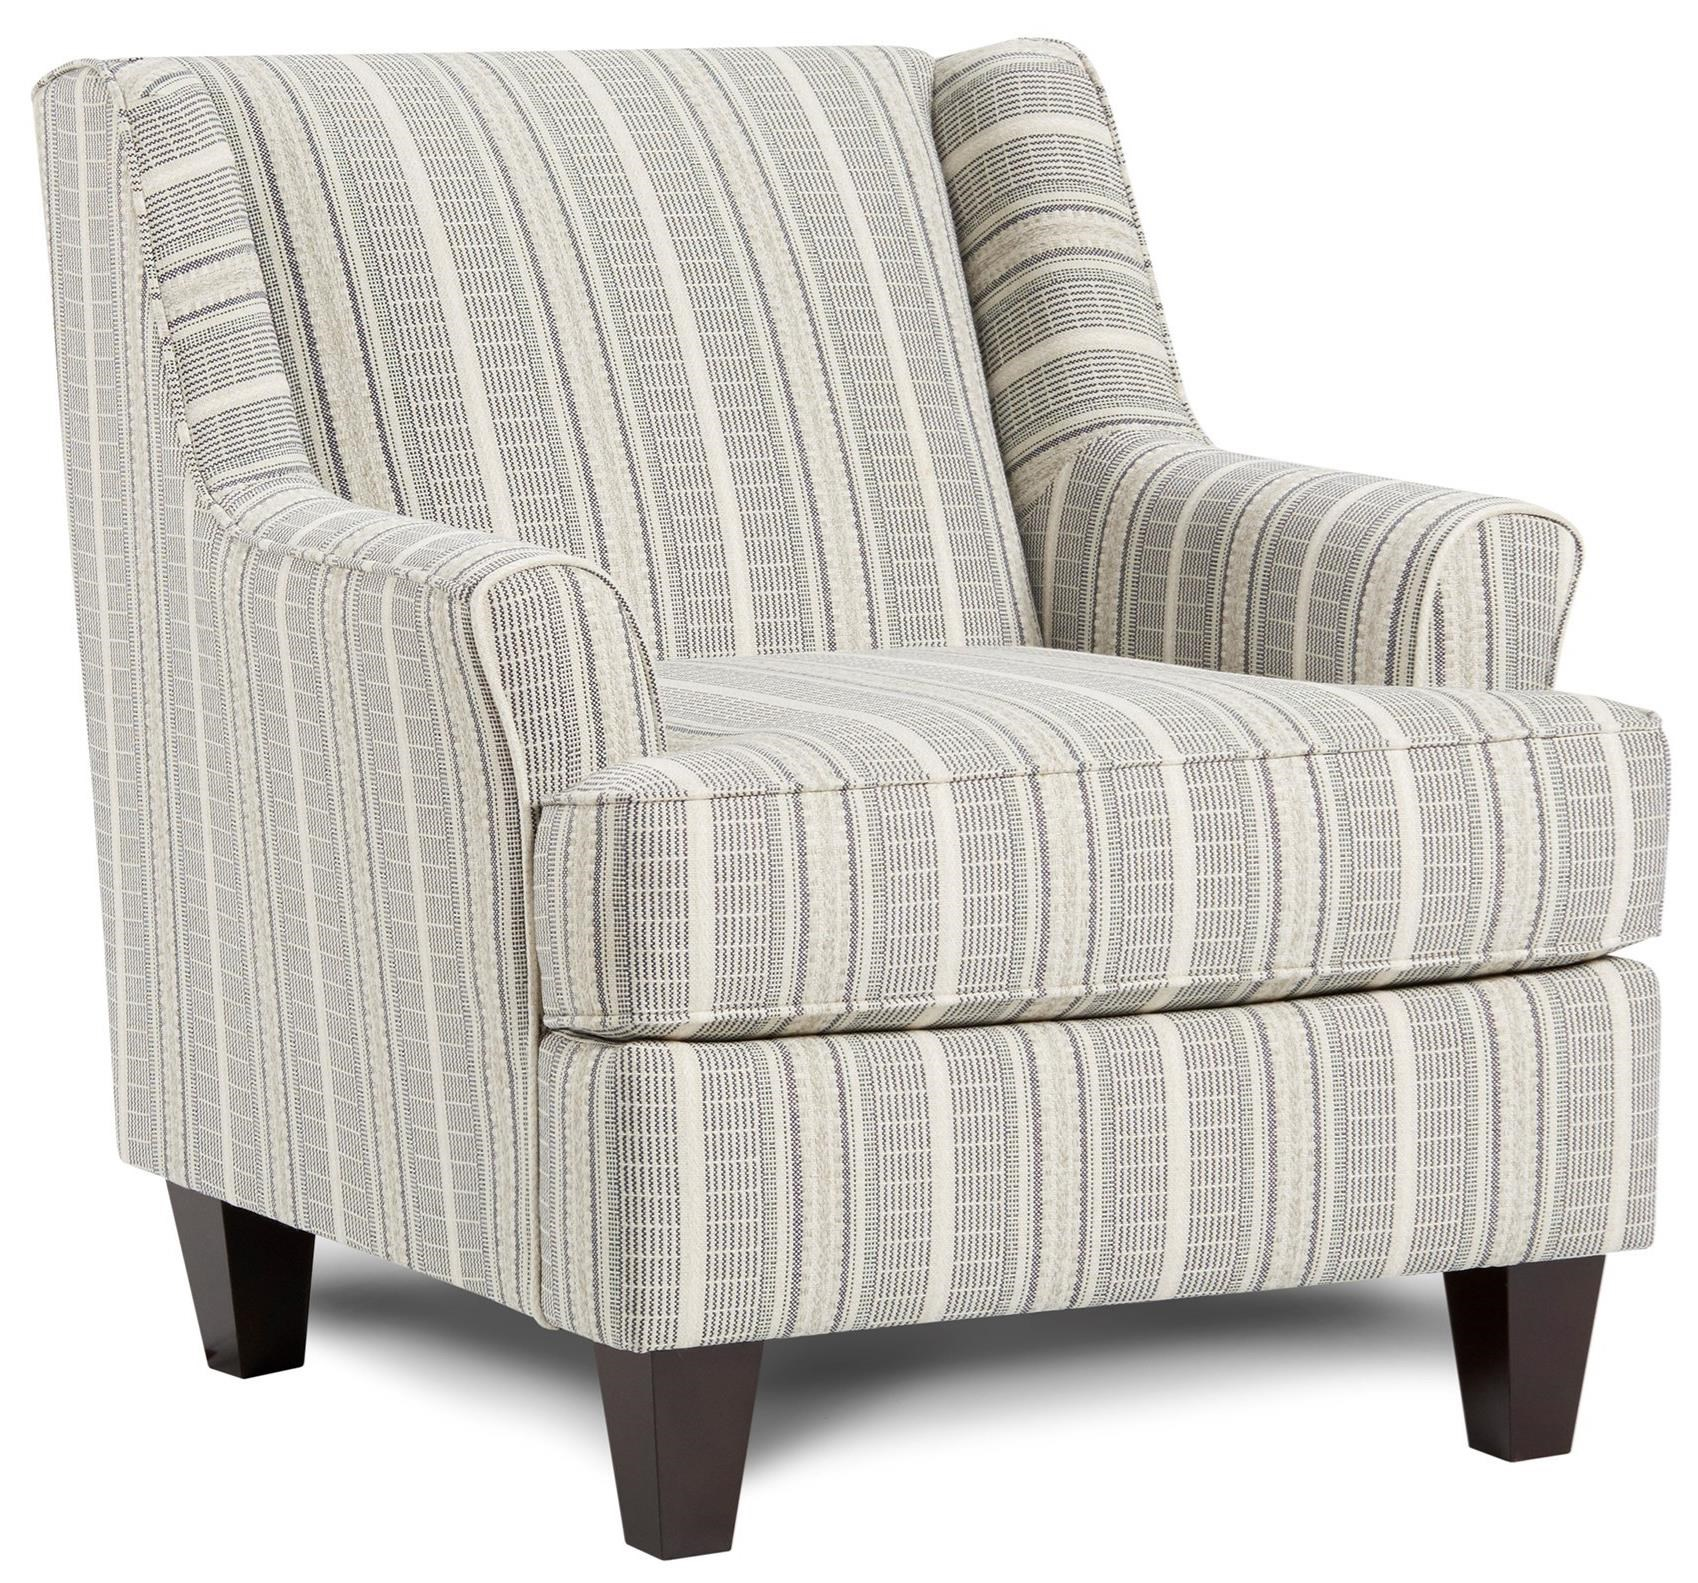 340 Upholstered Chair by Fusion Furniture at Wilson's Furniture